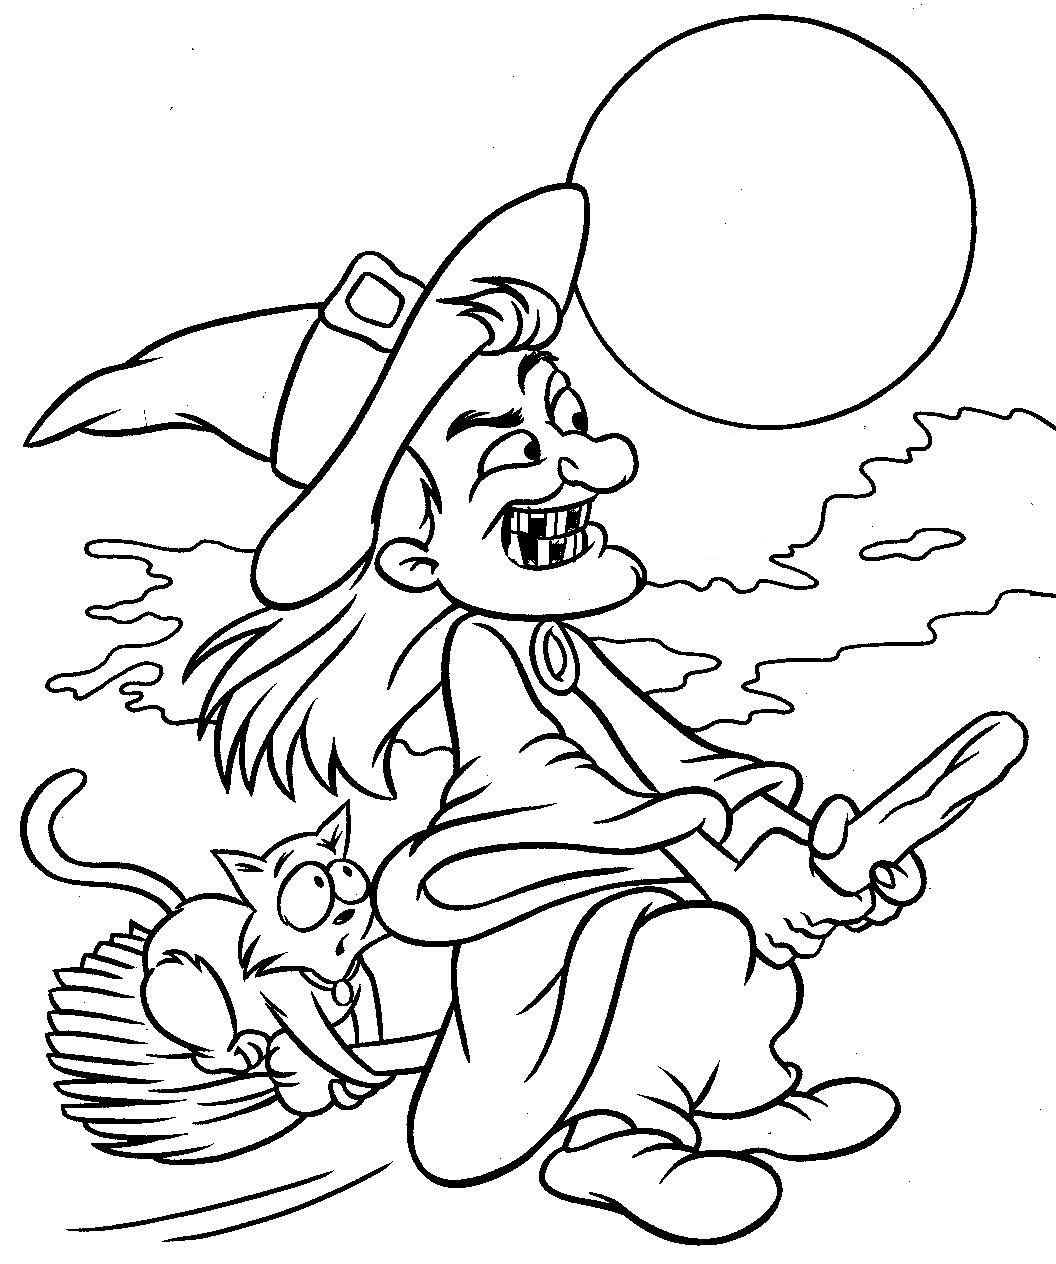 coloring pictures for halloween free halloween coloring pages halloween coloring pages for halloween pictures coloring